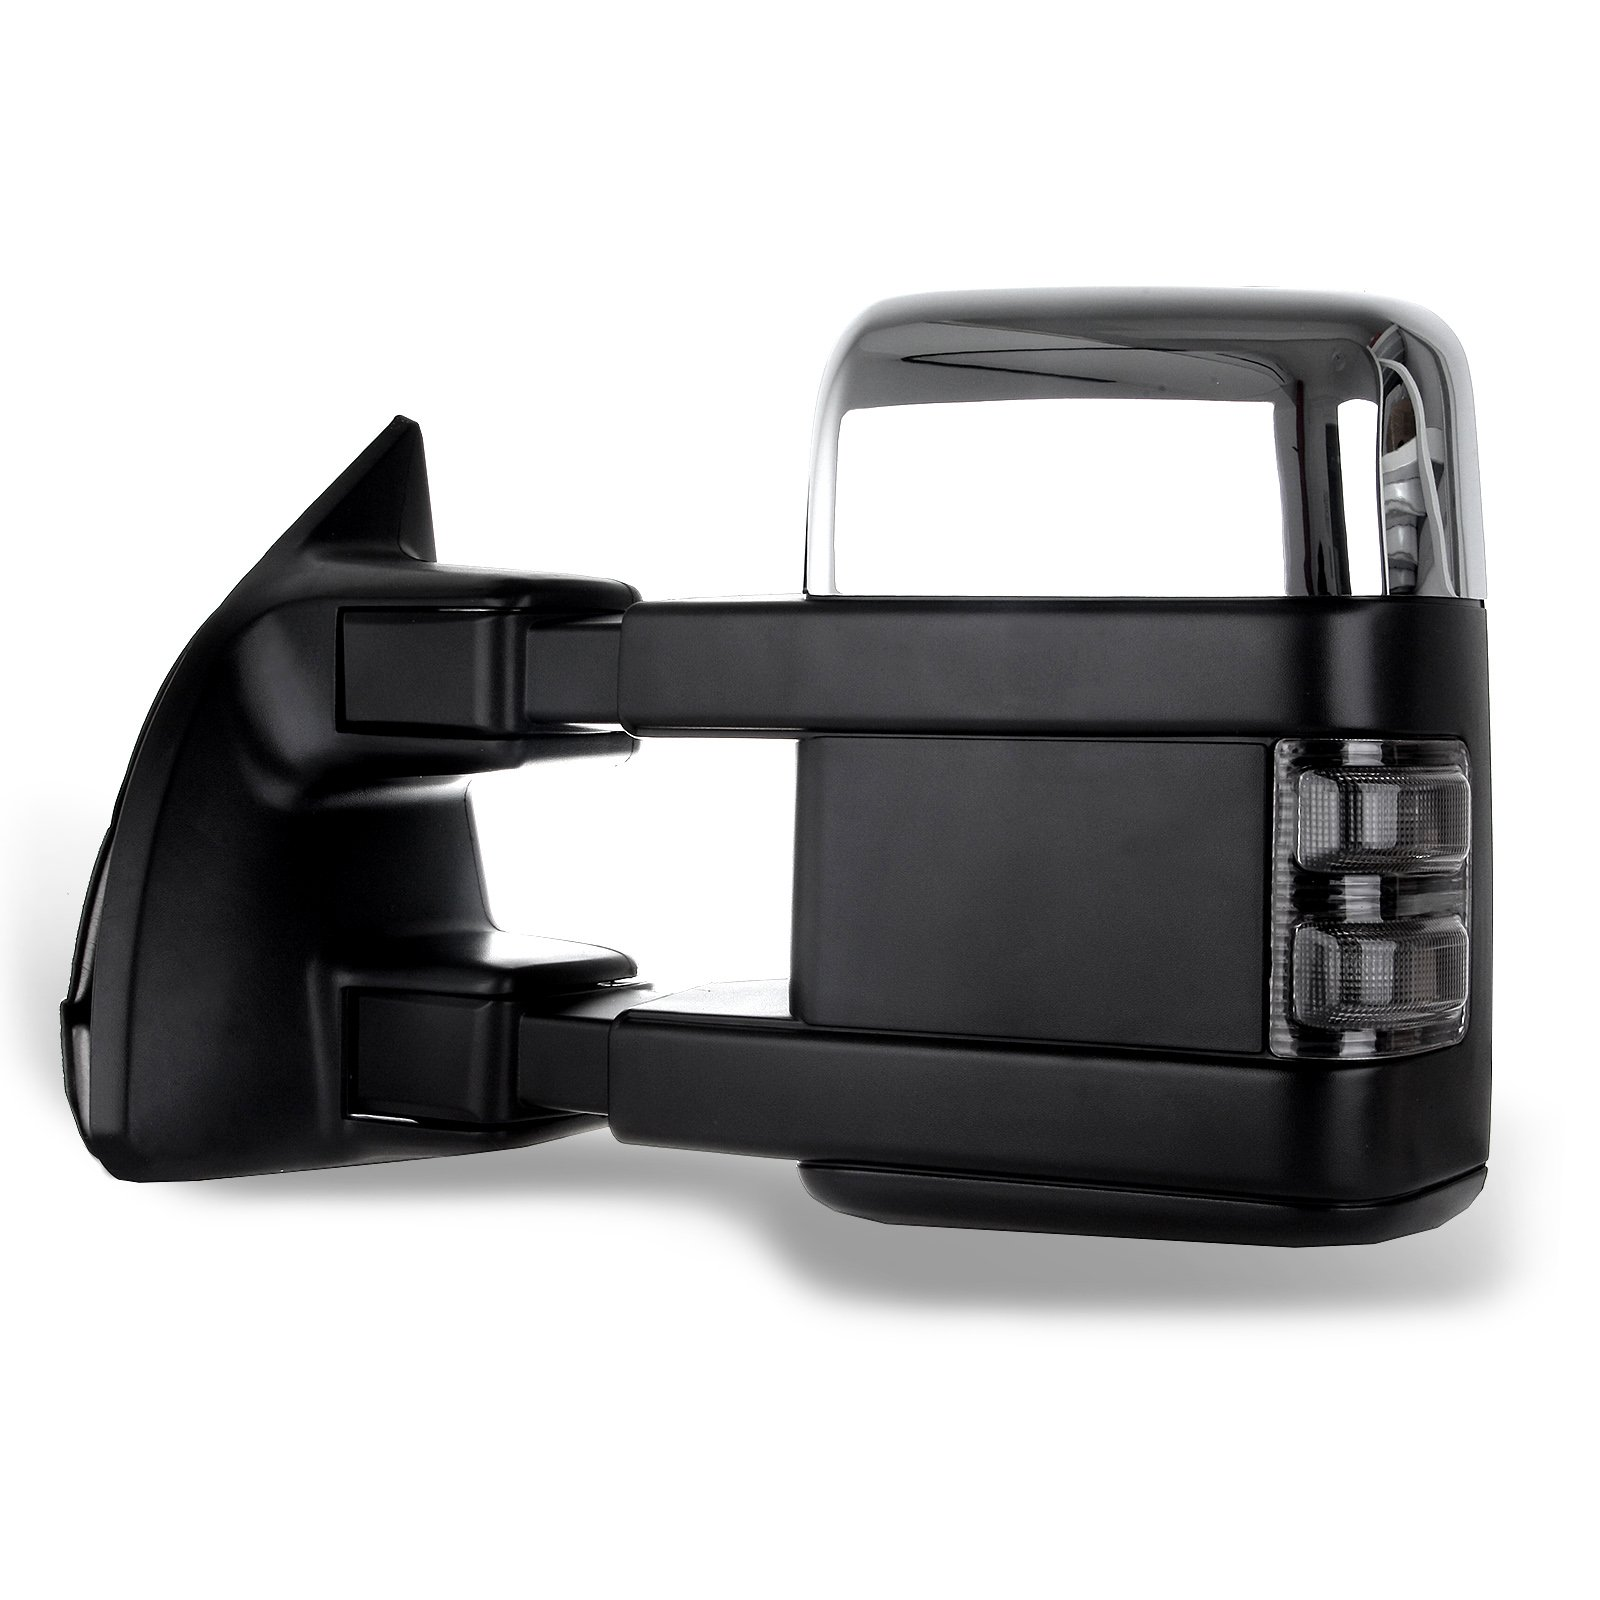 SCITOO fit Ford Towing Mirrors Chrome Rear View Mirrors fit 2008-2016 Ford F250 F350 F450 F550 Super Duty Truck Larger Glass Power Control, Heated Turn Signal Manual Extending Folding by SCITOO (Image #5)